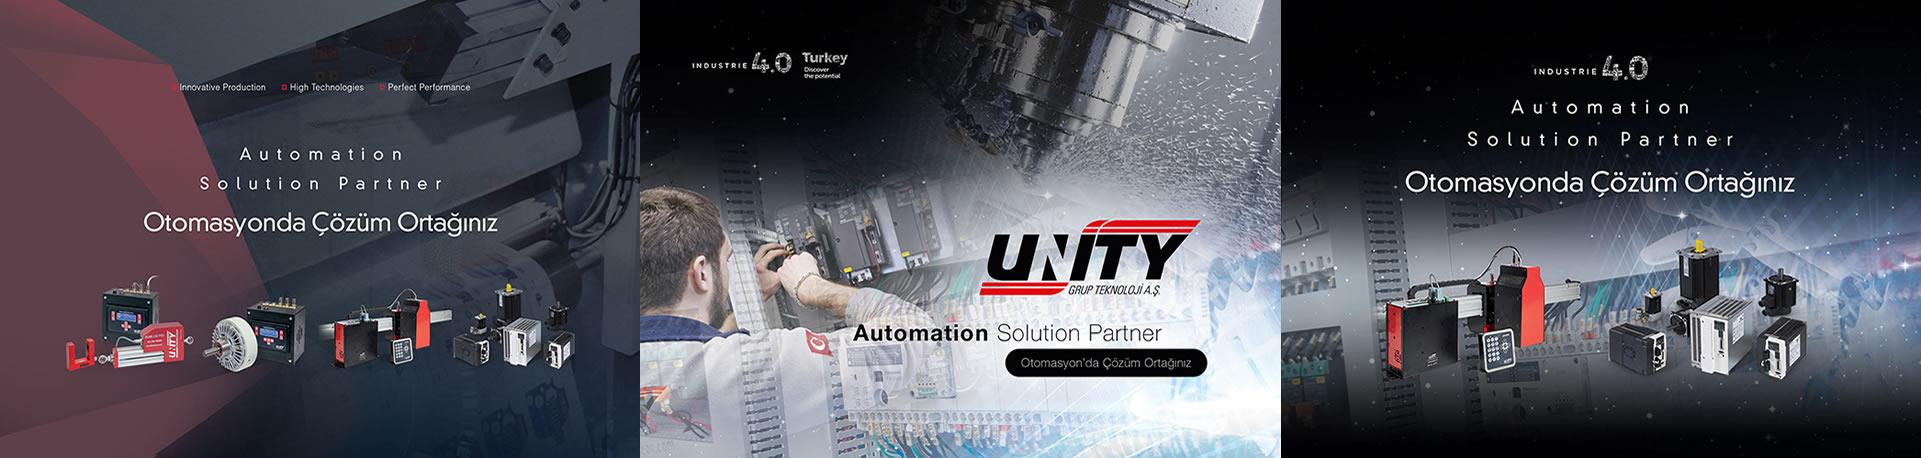 UNİTY GROUP TECHNOLOGY A.Ş.